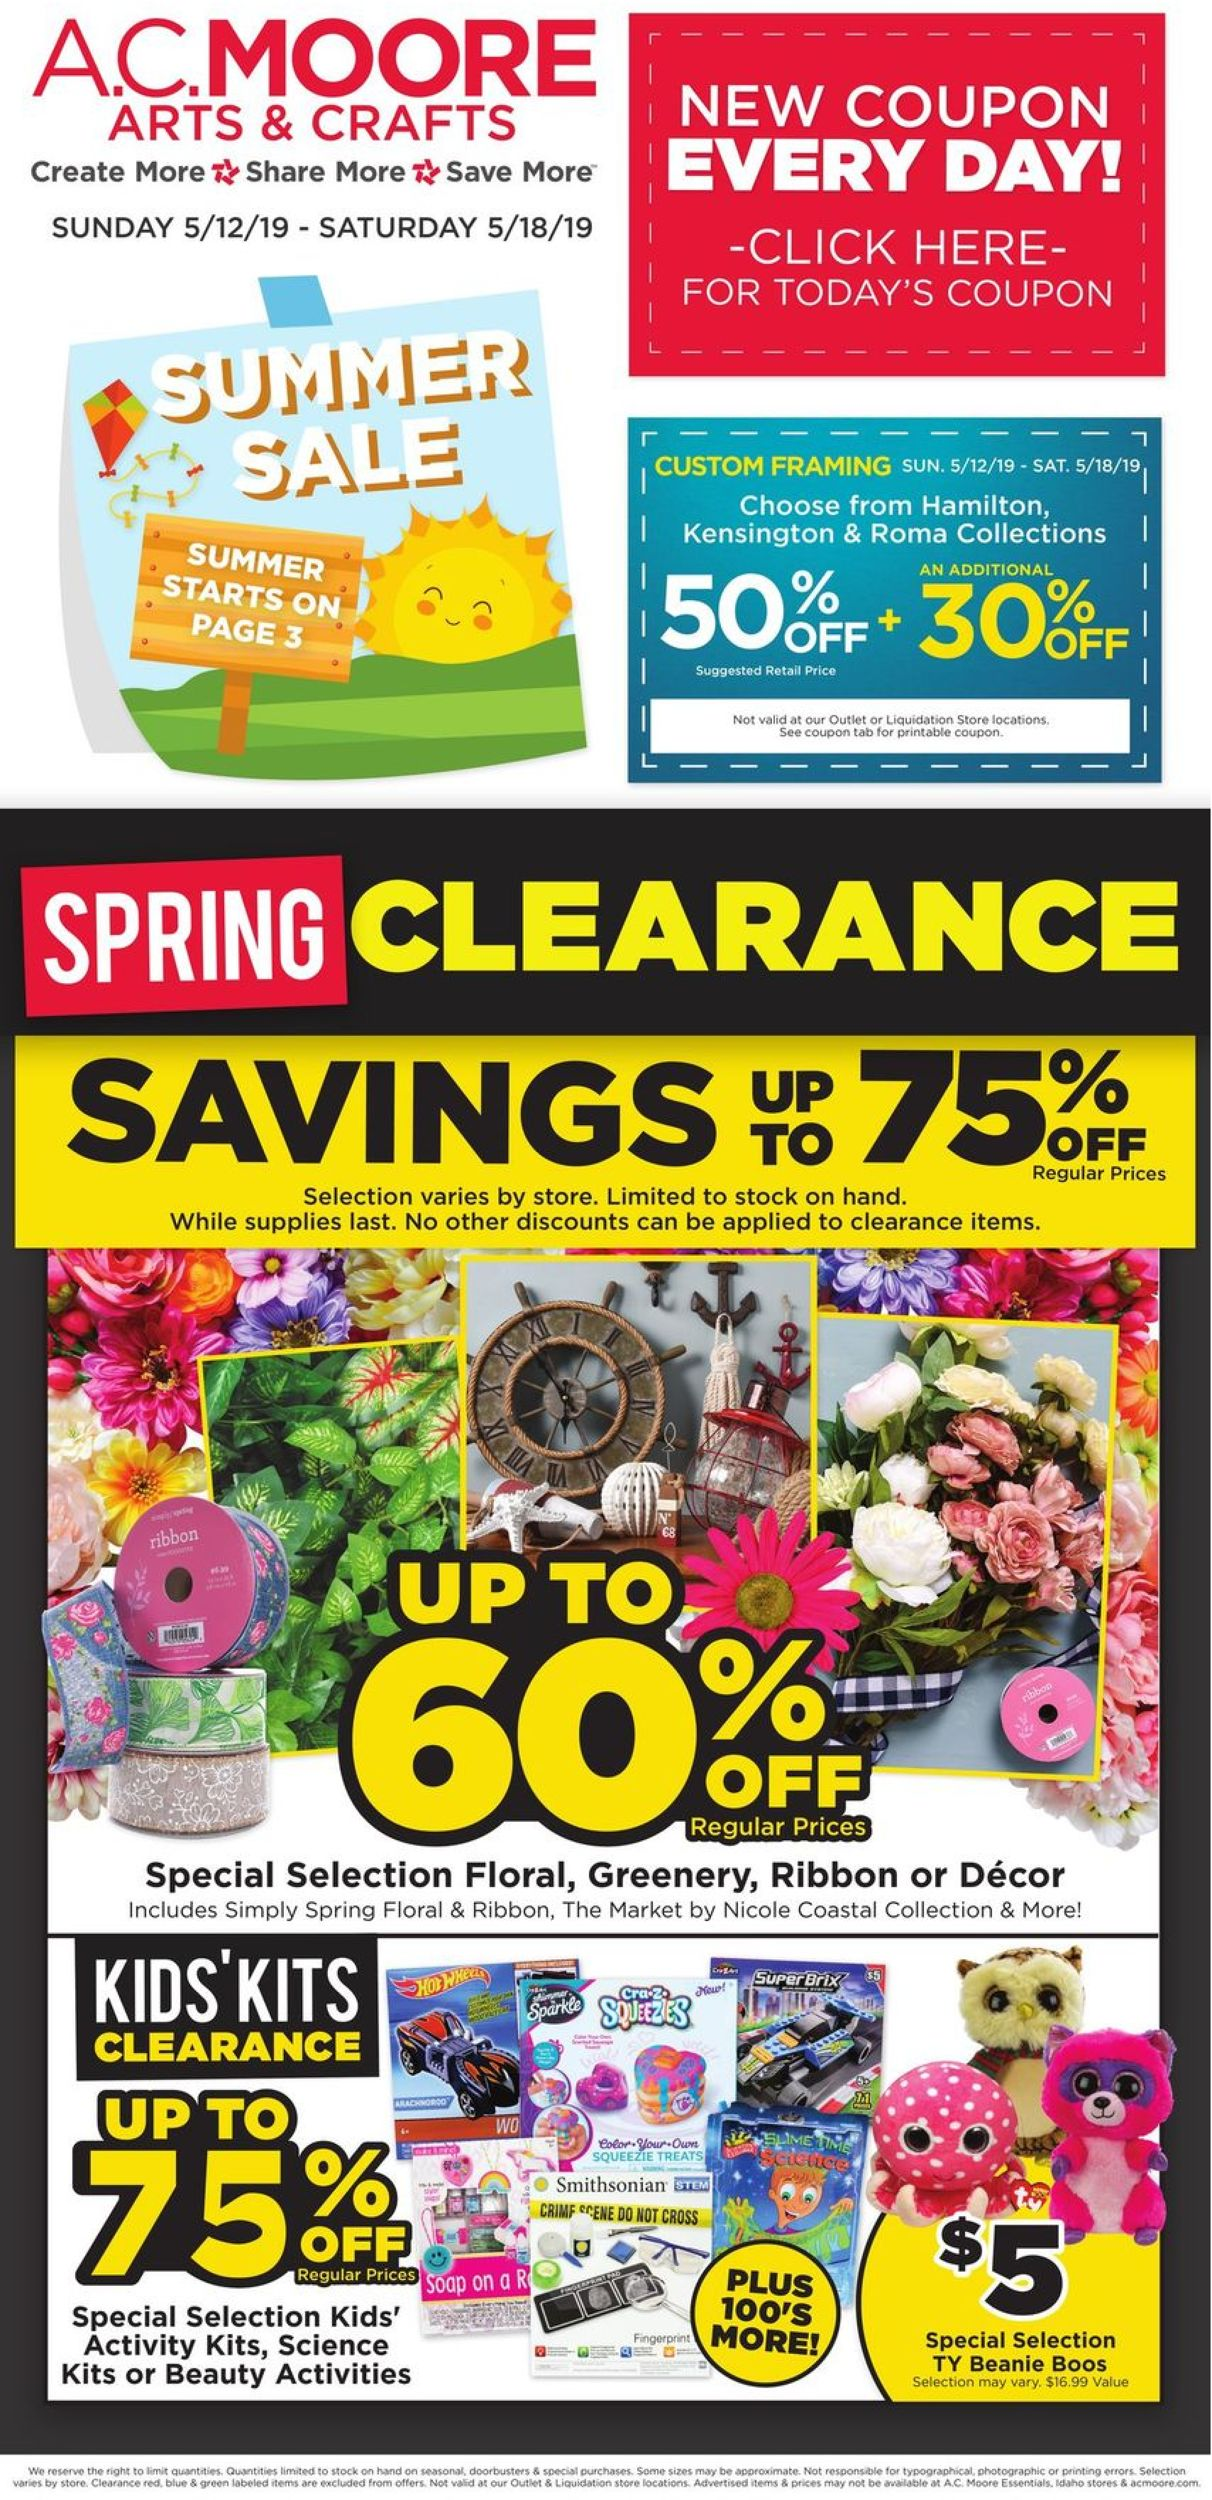 A C  Moore Current weekly ad 05/12 - 05/18/2019 - frequent